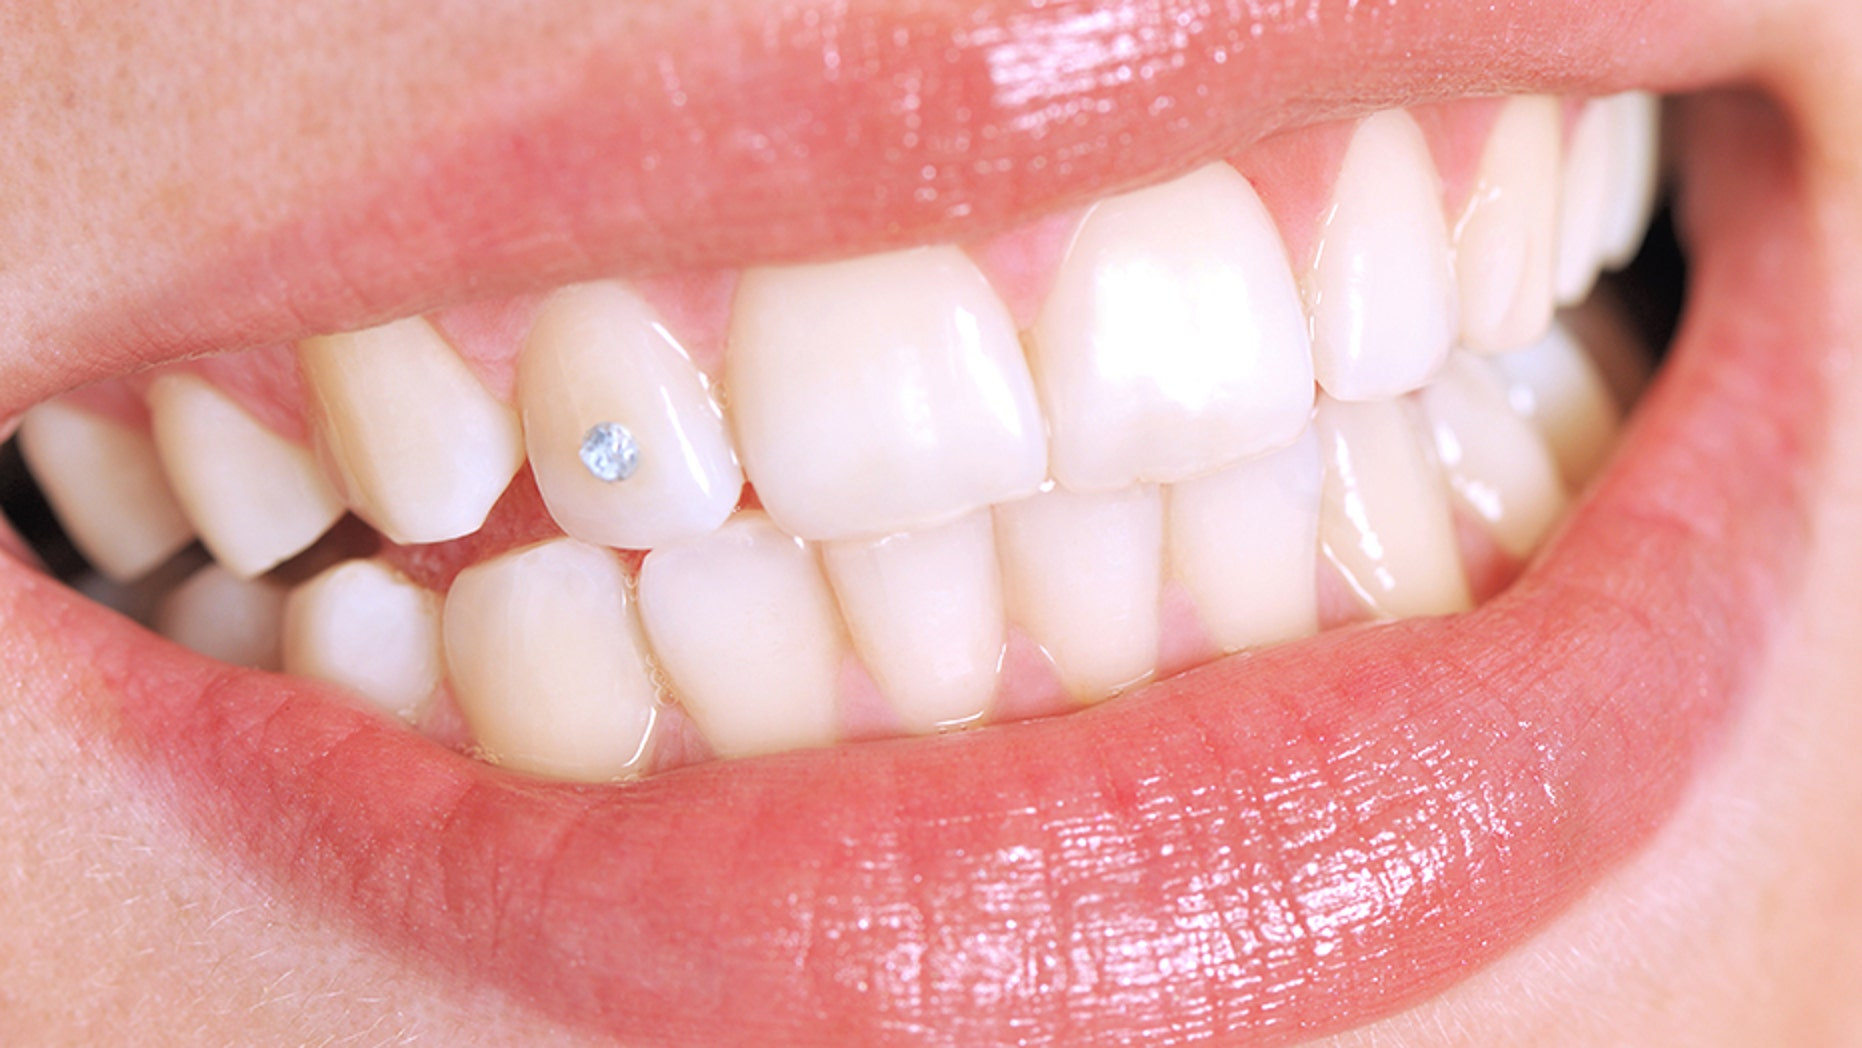 The latest trend that appears to be catching on with celebrities is teeth jewelry.